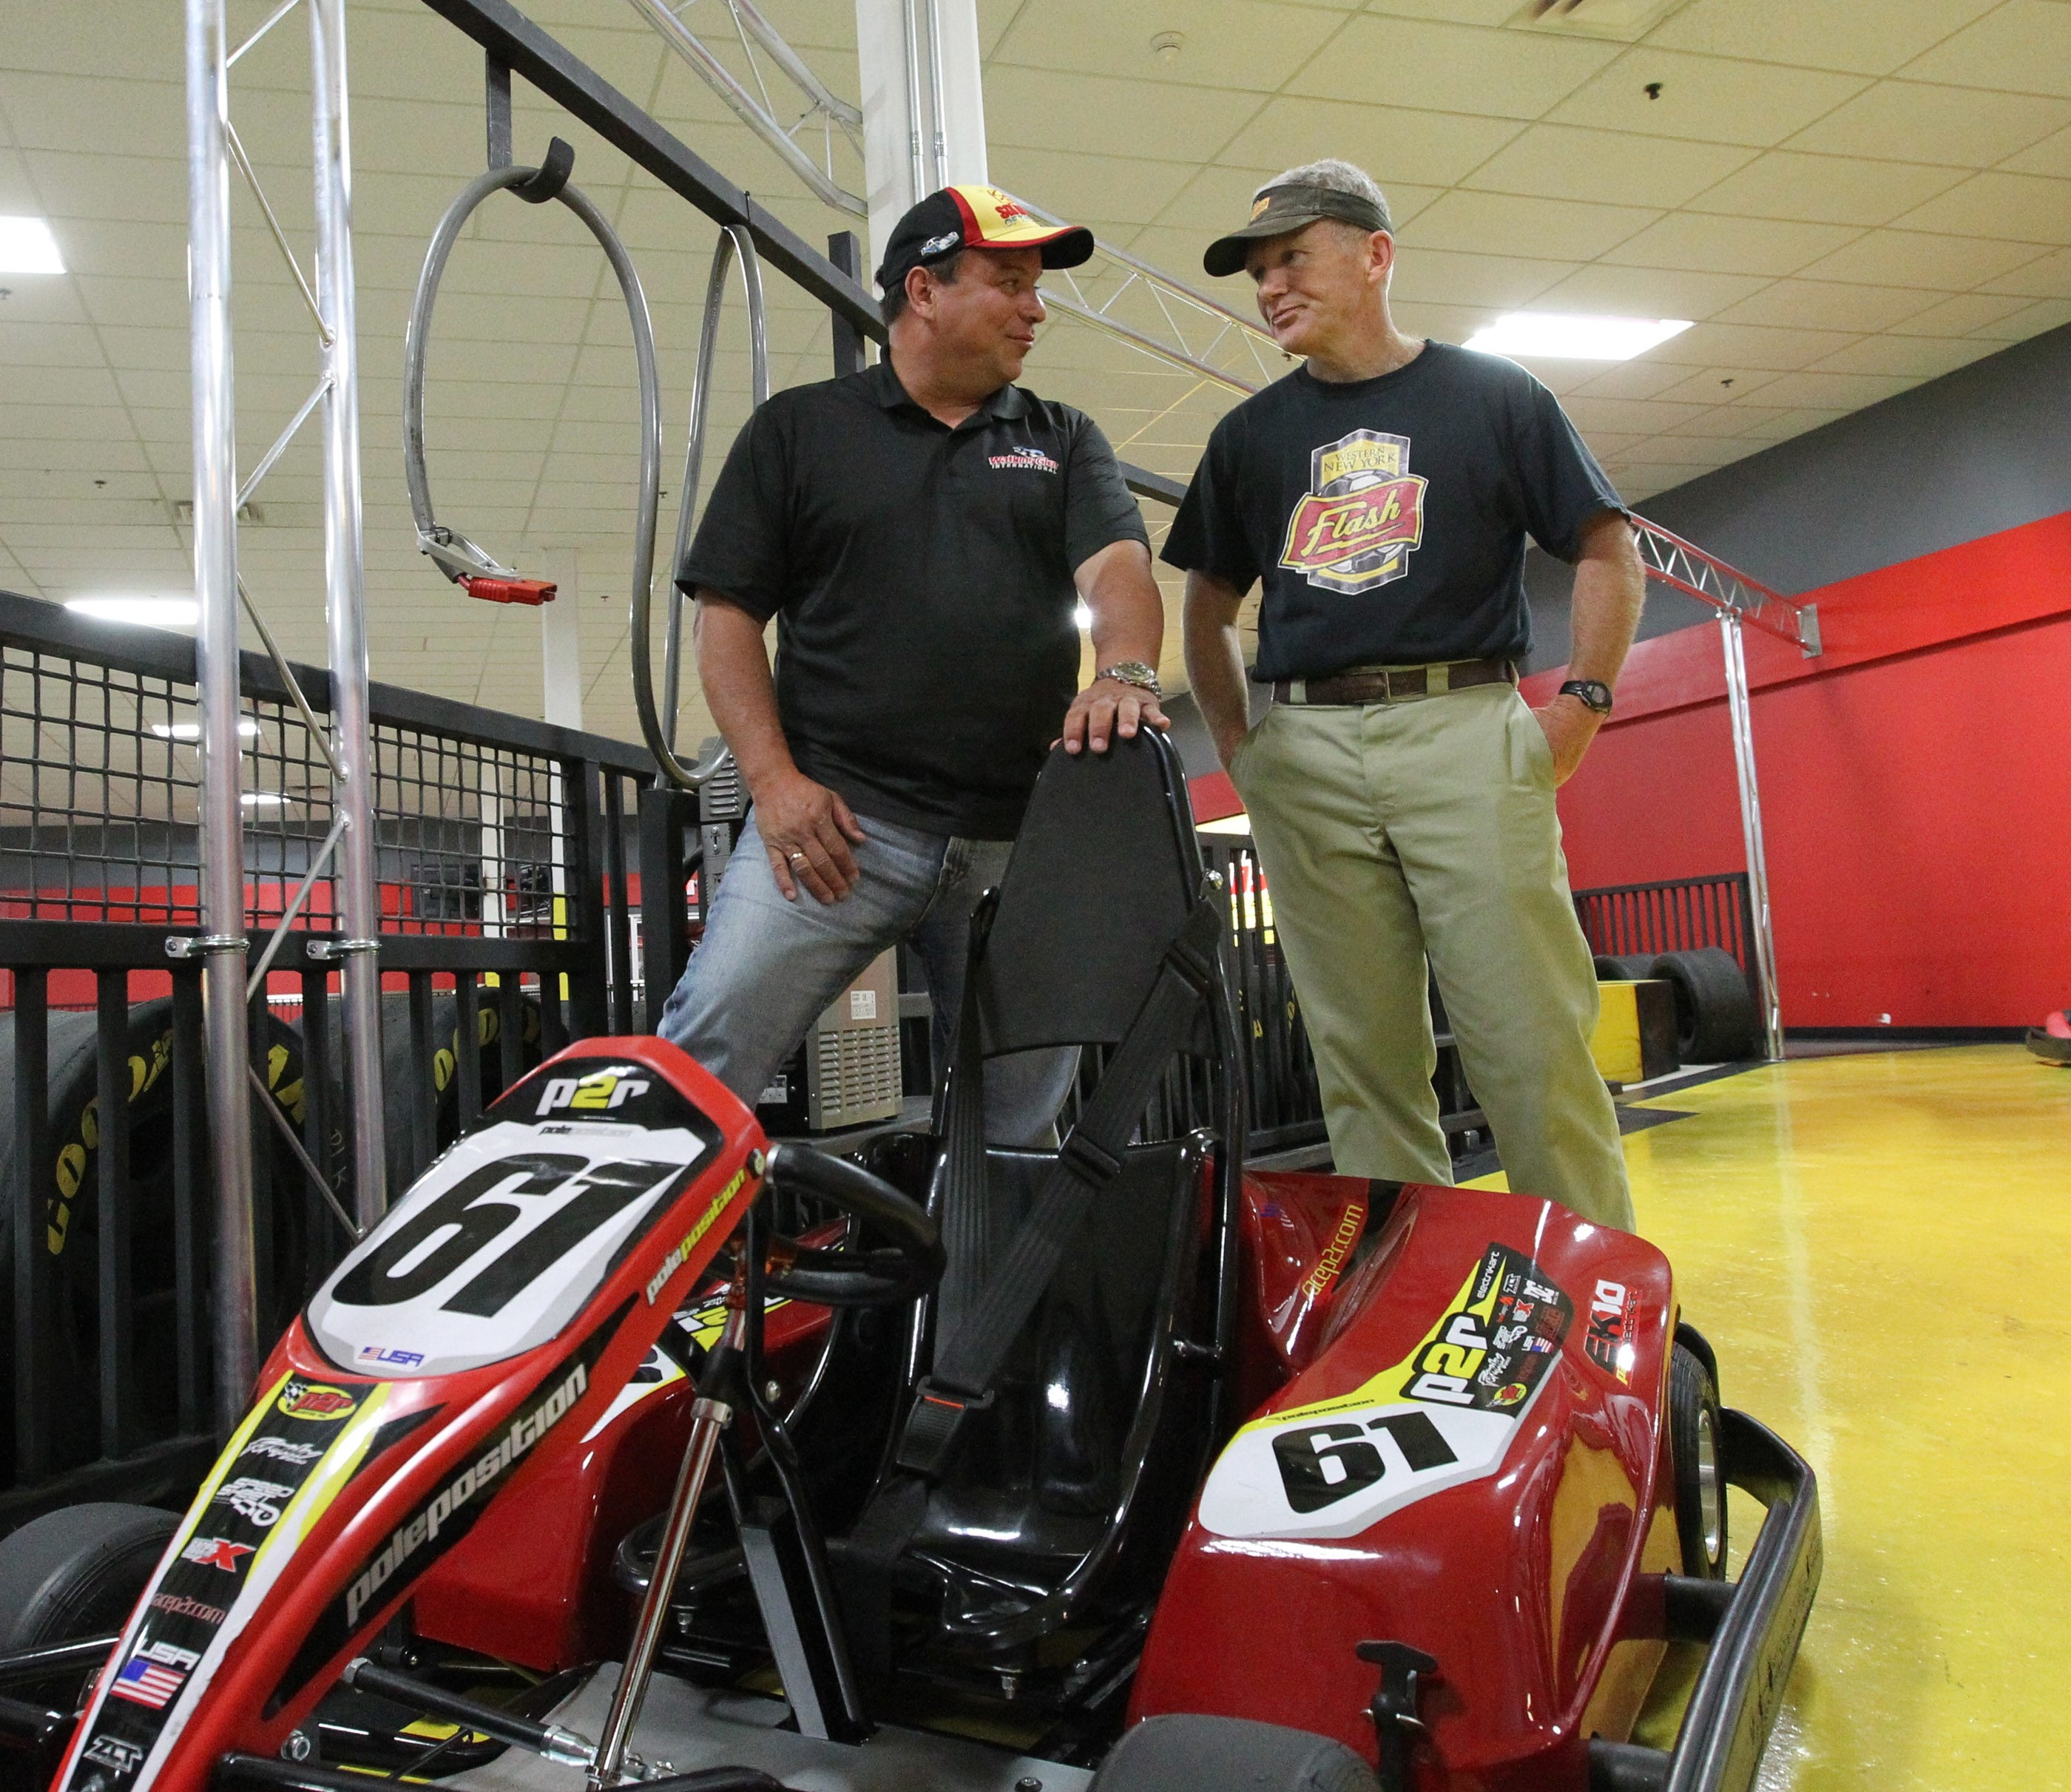 Watkins Glen president Michael Printup, left, talks to Joe Sahlen about racing during an event at the Pole Position Raceway at Walden Galleria this week.